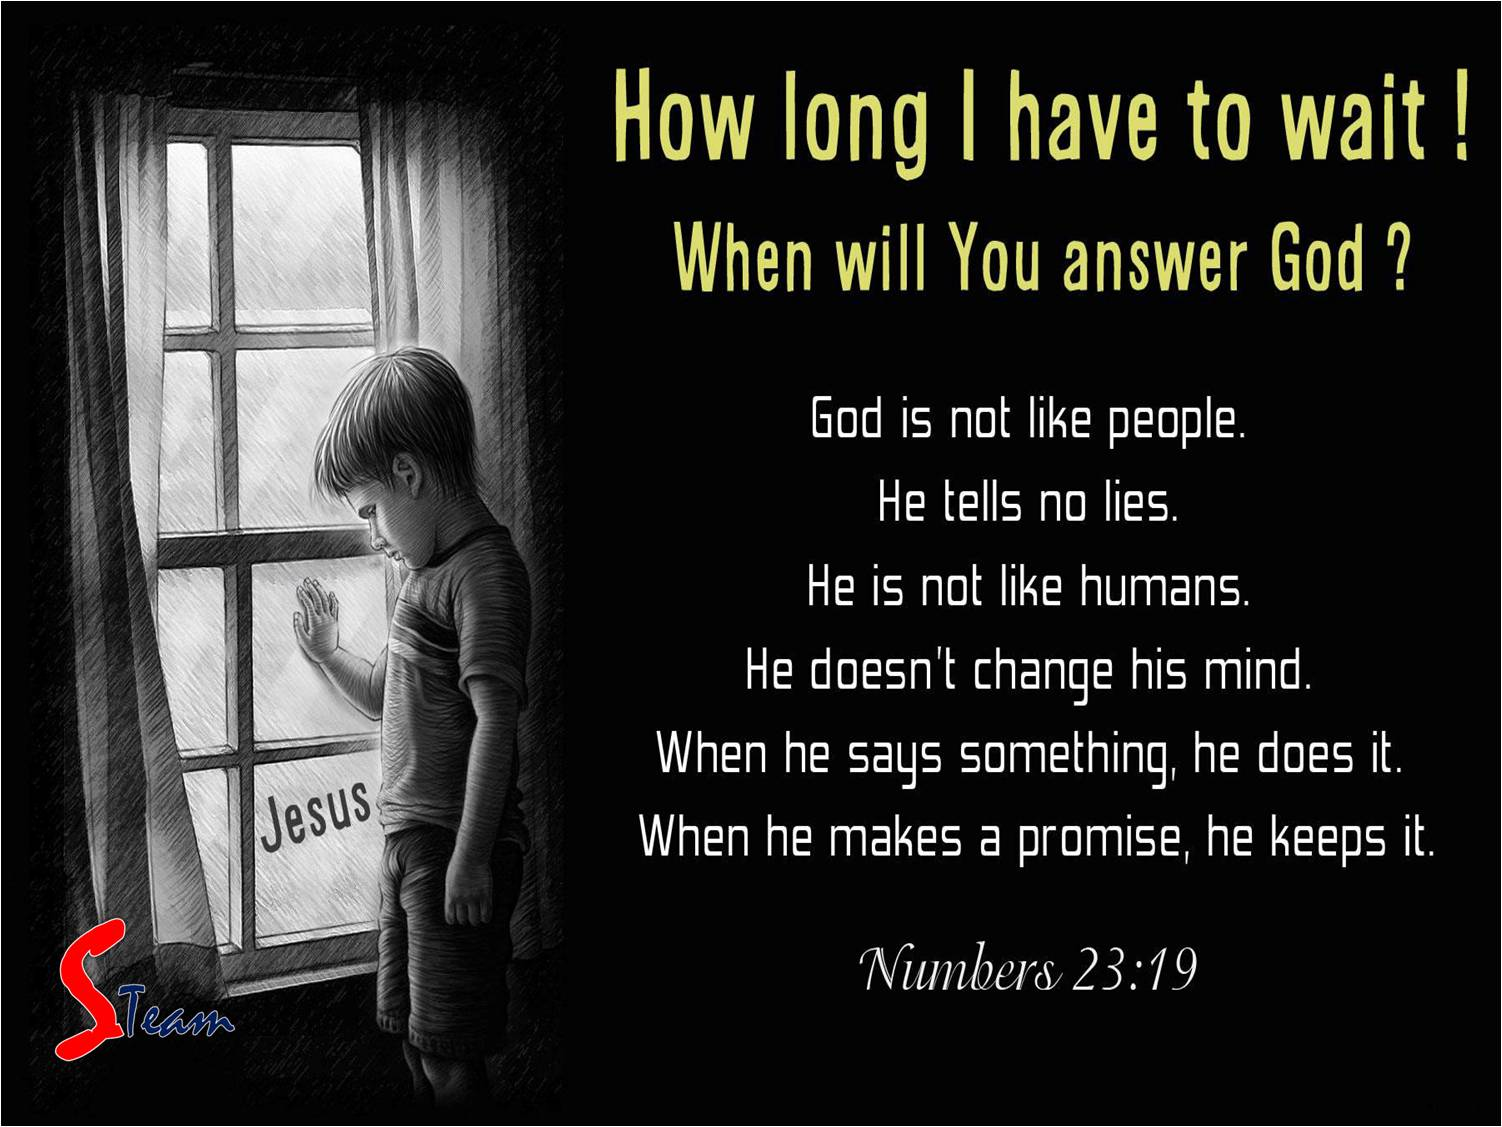 For trusting god look at these verses with a these questions in mind